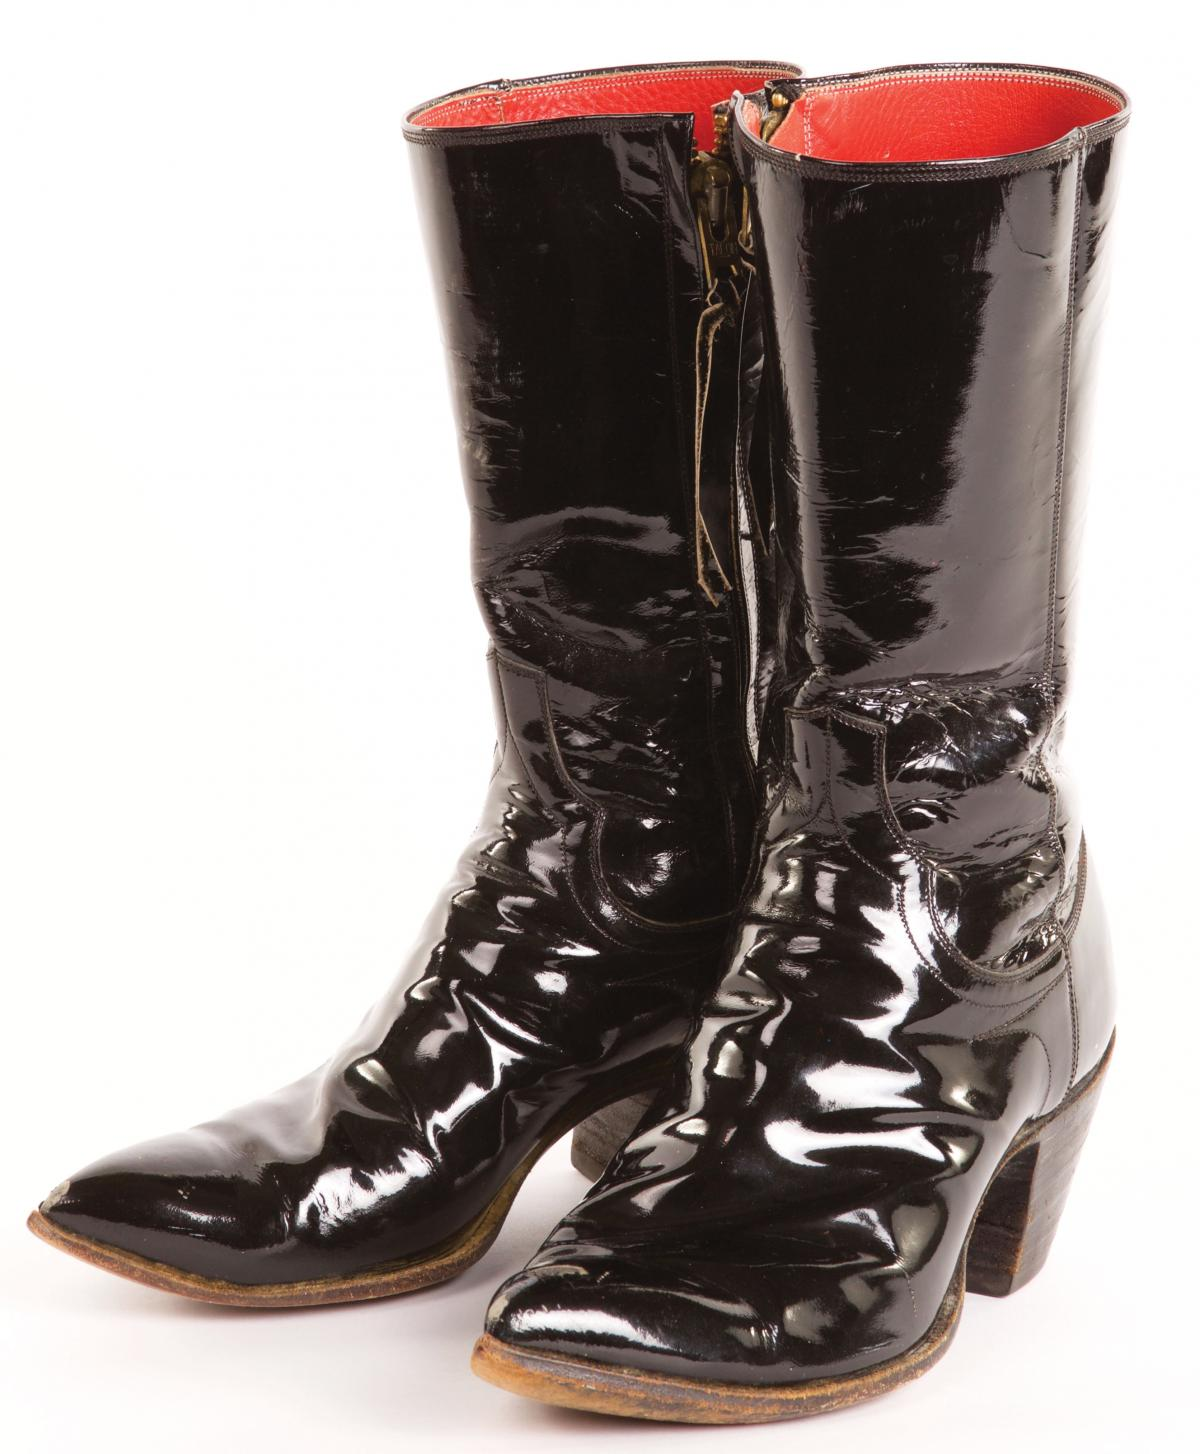 Phillips's trademark patent leather boots